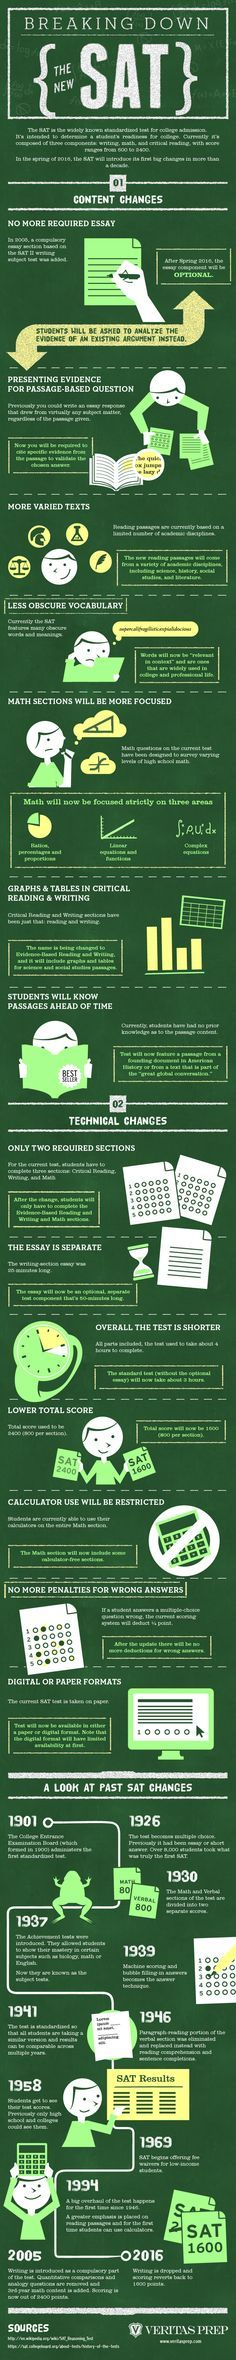 Breaking Down the New SAT